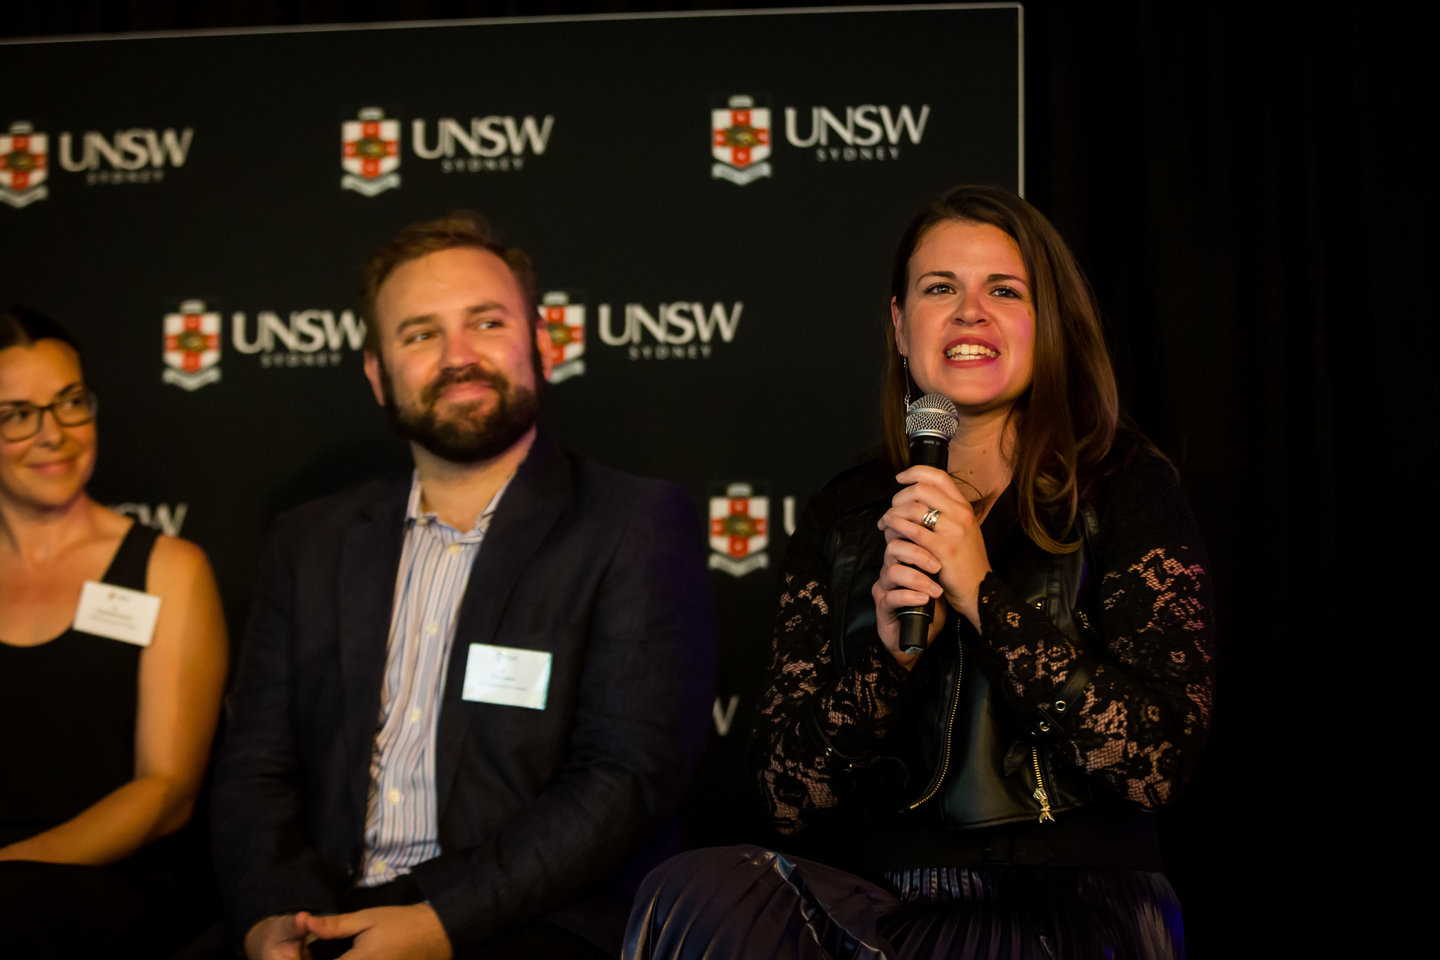 Lauren speaks at UNSW Future in Science Festival